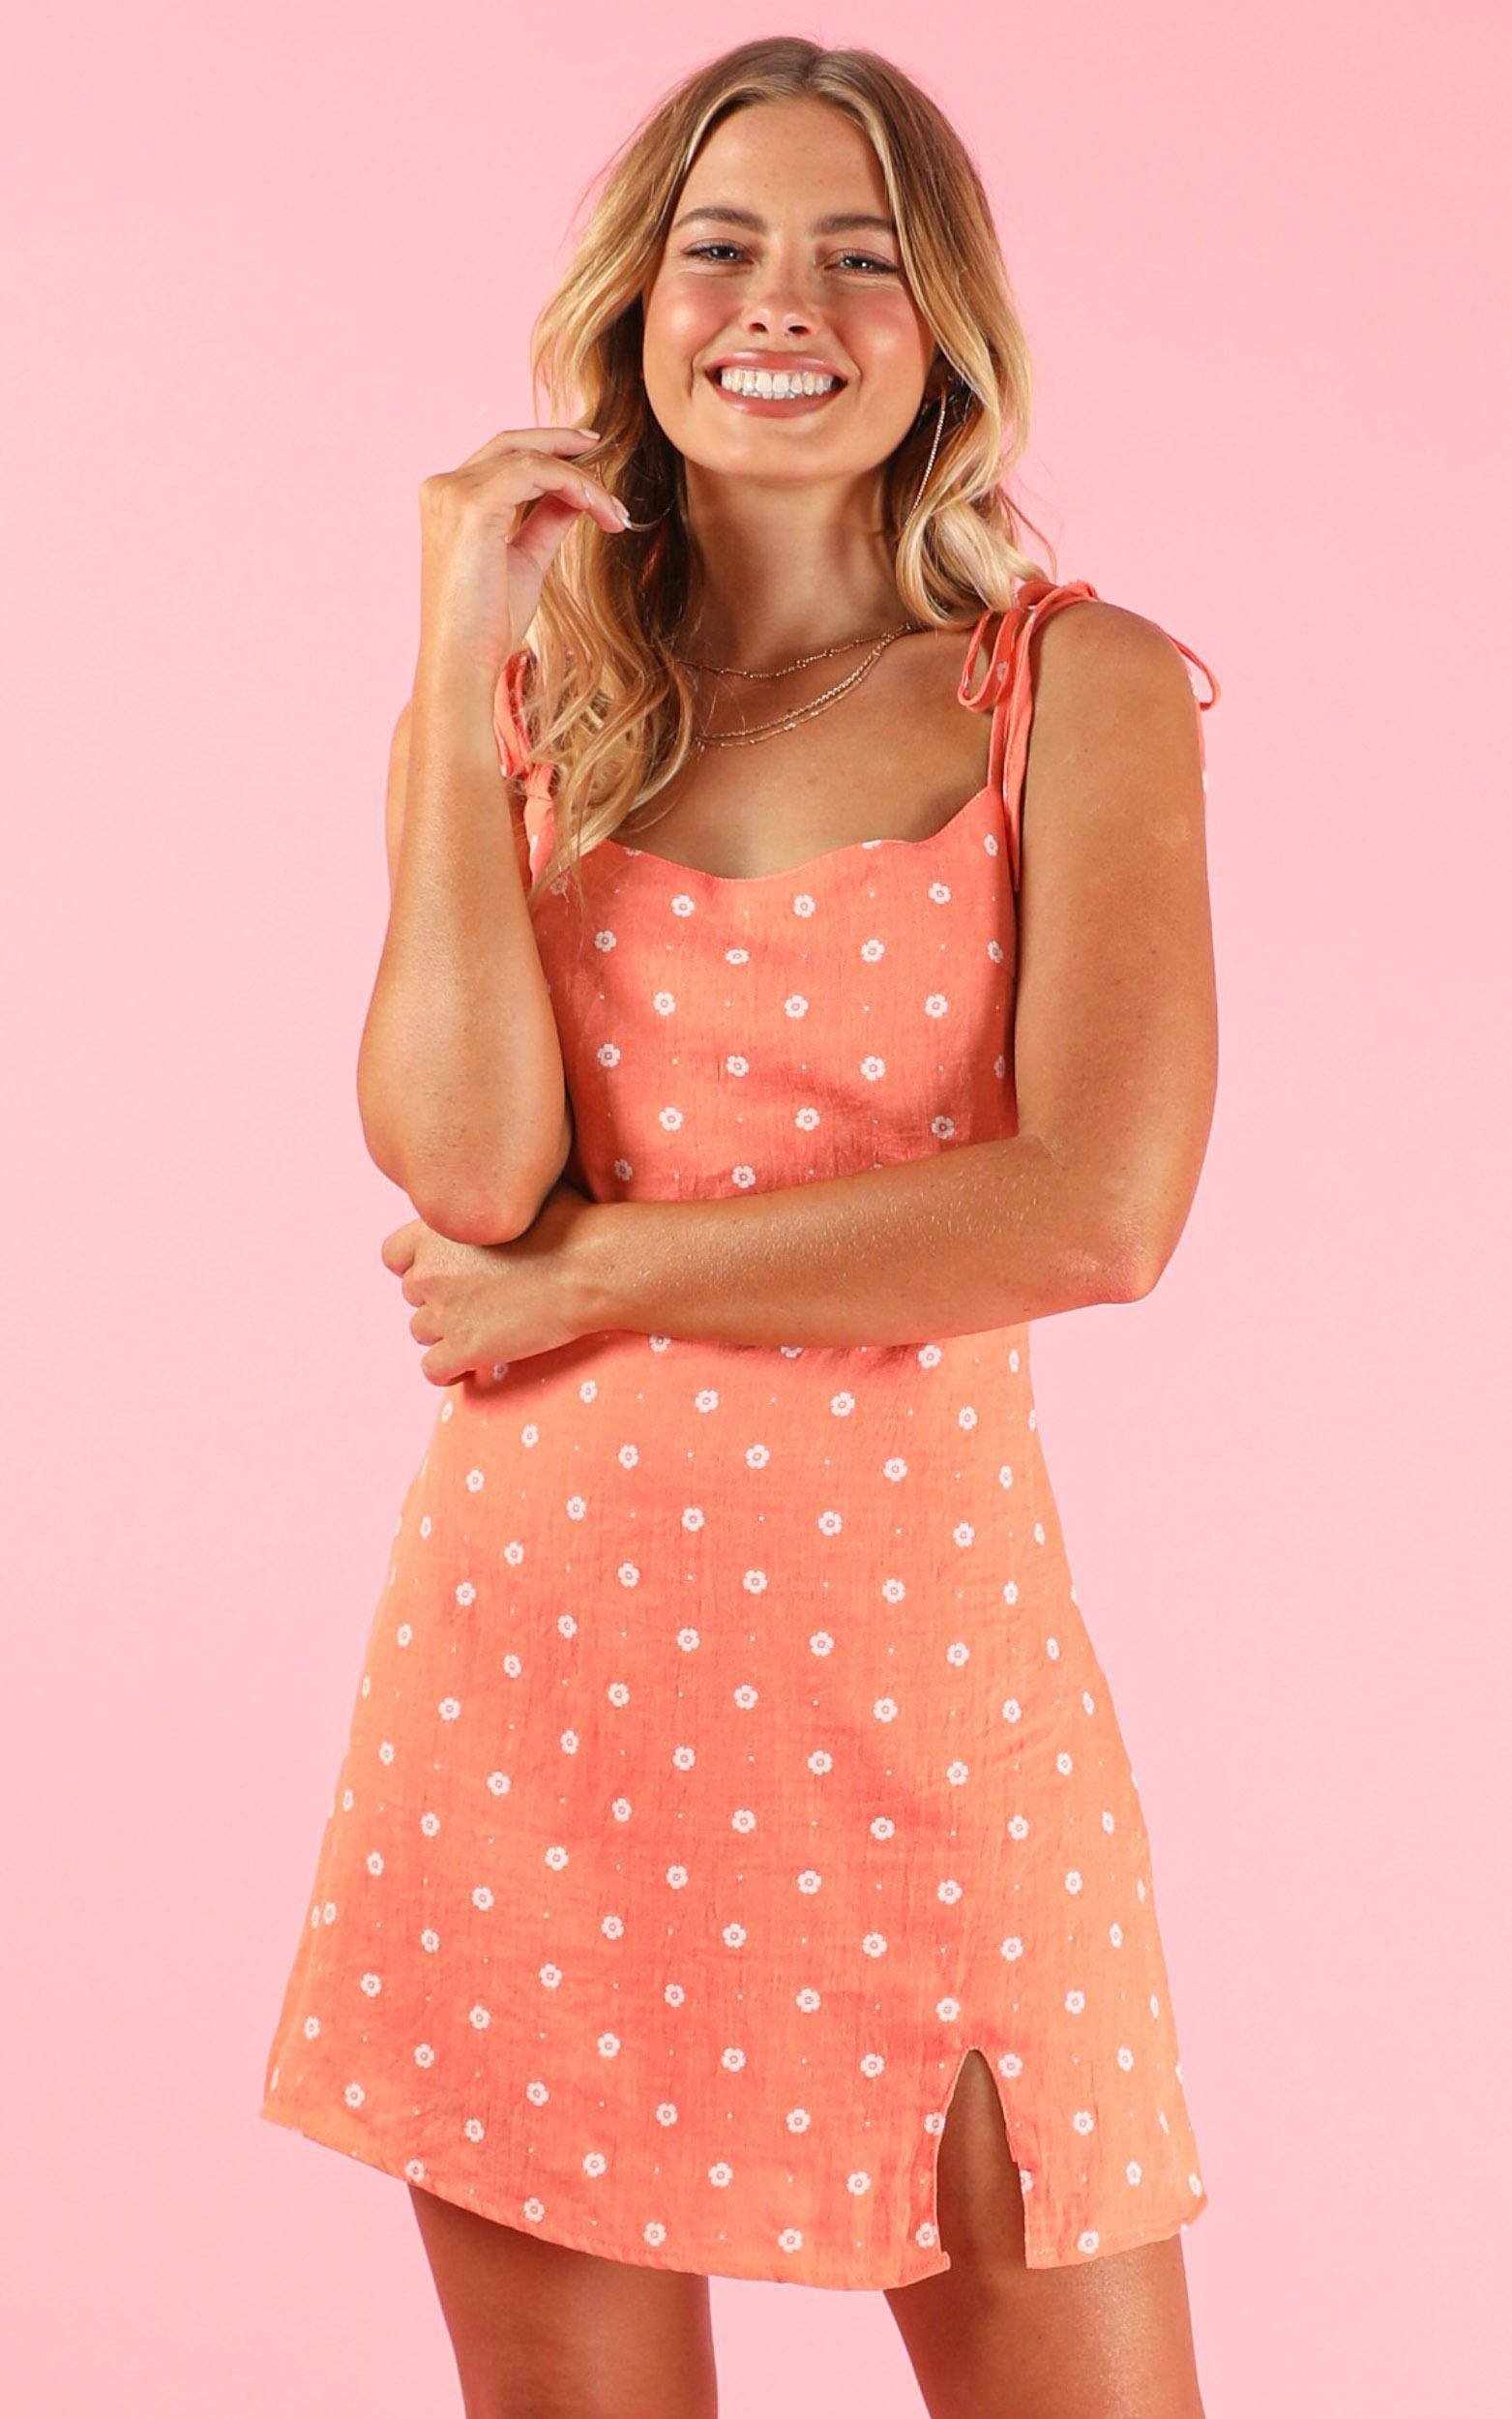 Italian Sunrise dress in apricot - 16 (XXL), Pink, hi-res image number null